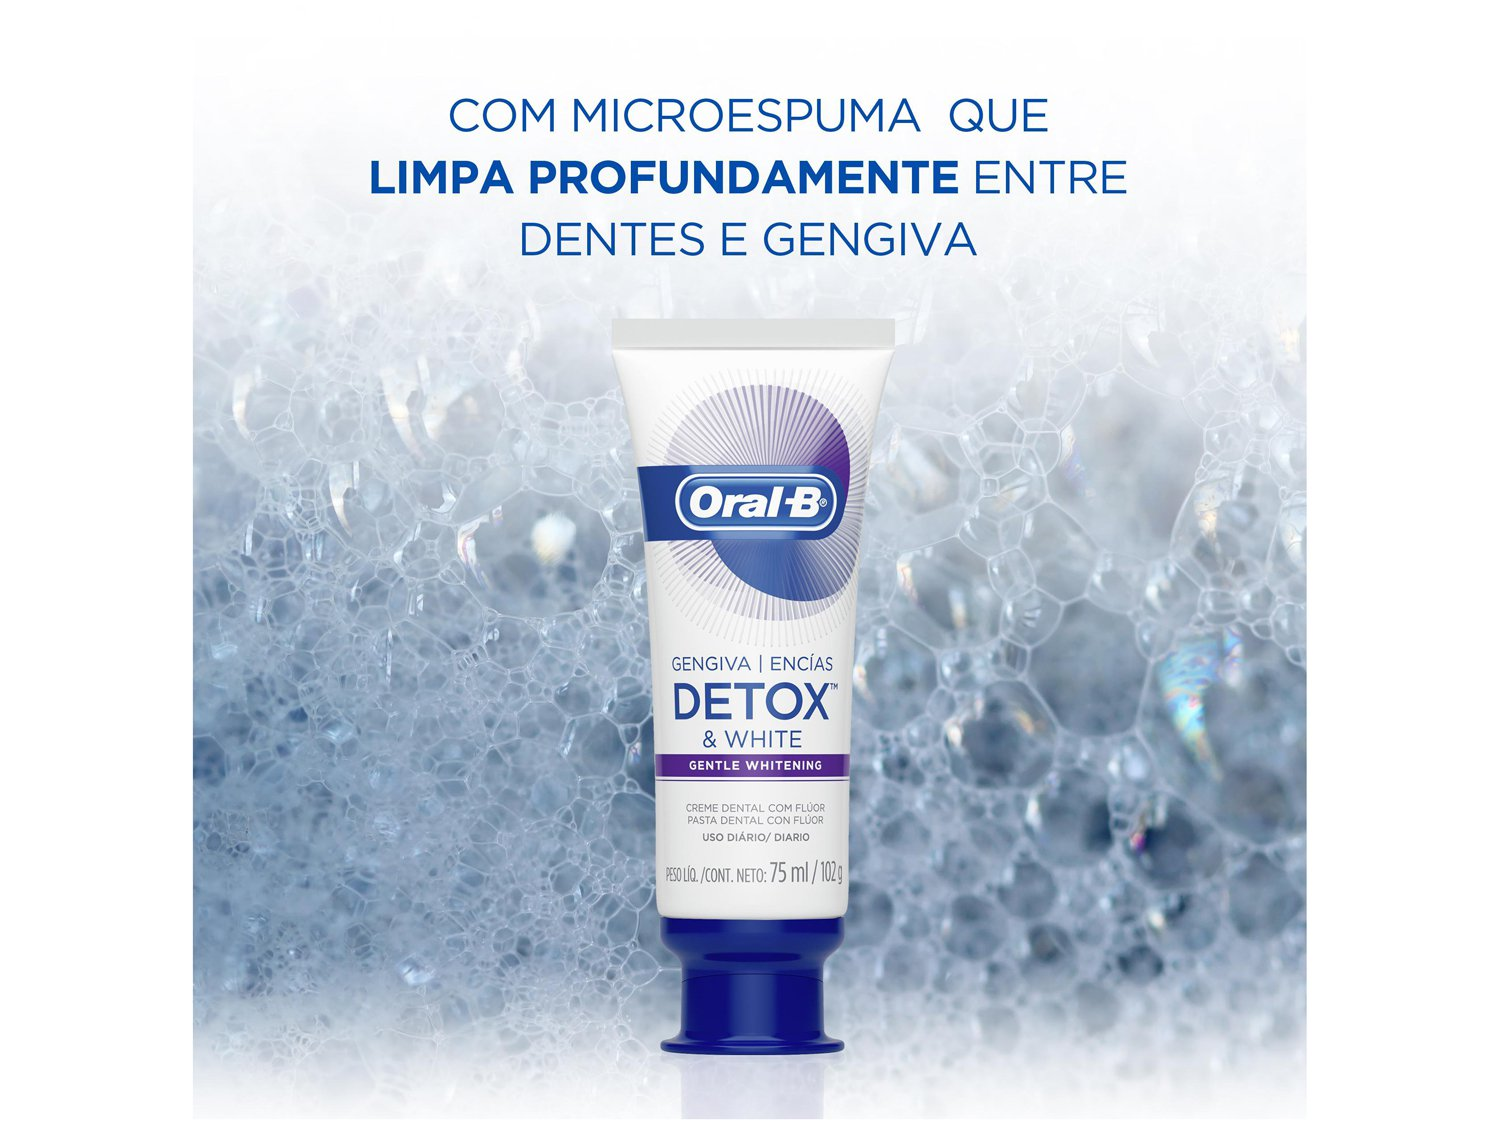 Creme Dental com Flúor Oral-B Detox - Gentle Whitening 102g - 2